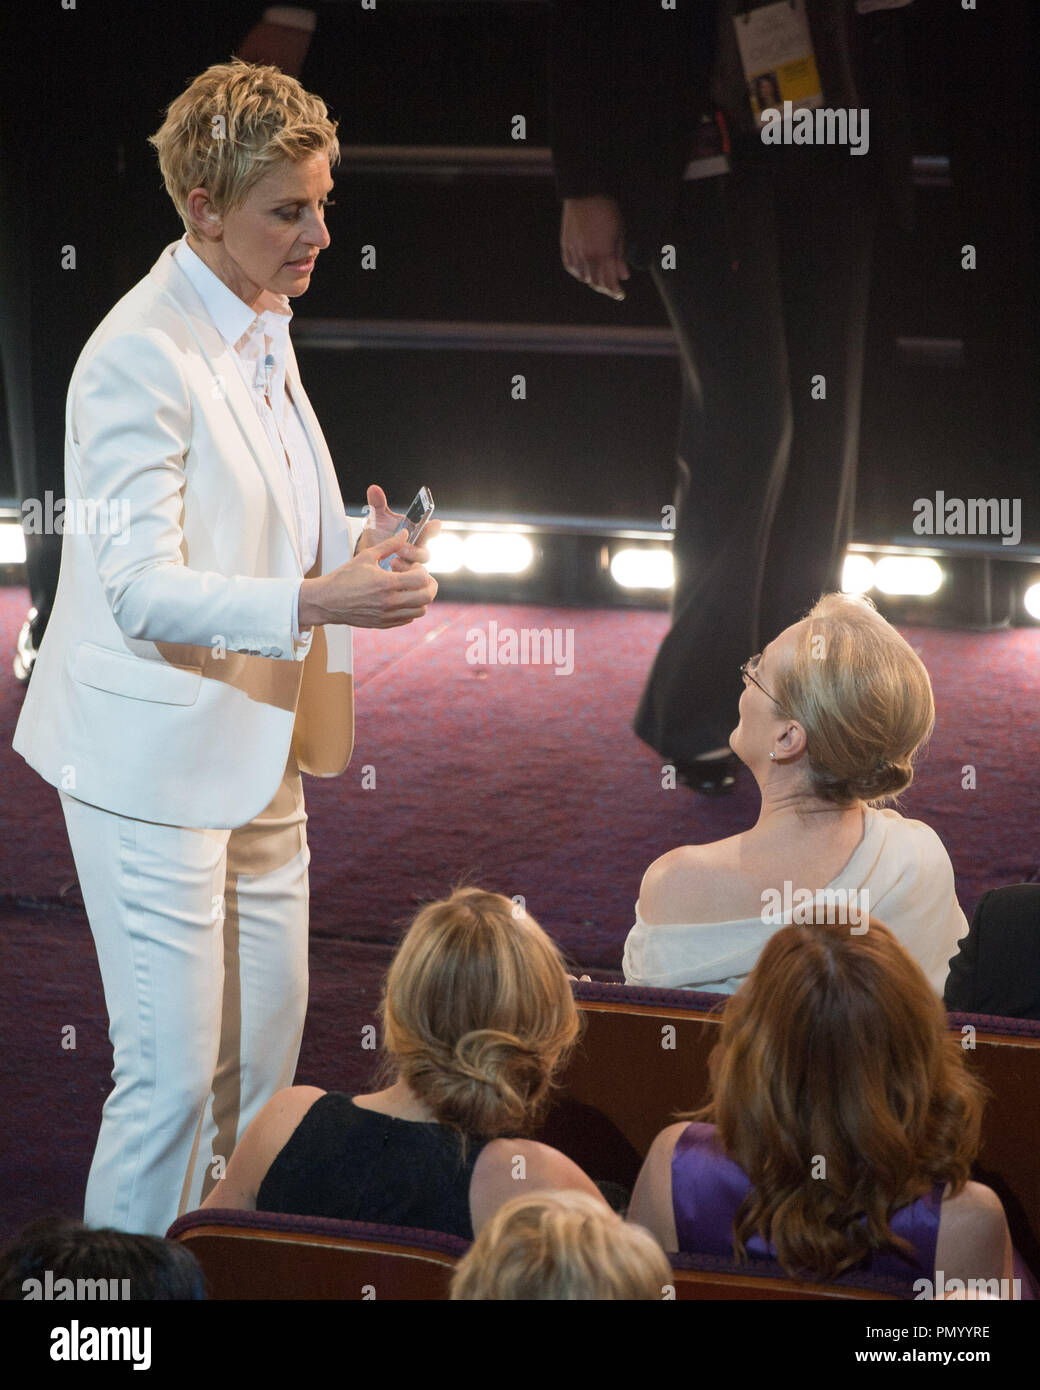 Ellen Degeneres talks with Oscar®-nominee Meryl Streep during the live ABC Telecast of The Oscars® from the Dolby® Theatre in Hollywood, CA Sunday, March 2, 2014.  File Reference # 32268_612  For Editorial Use Only -  All Rights Reserved - Stock Image